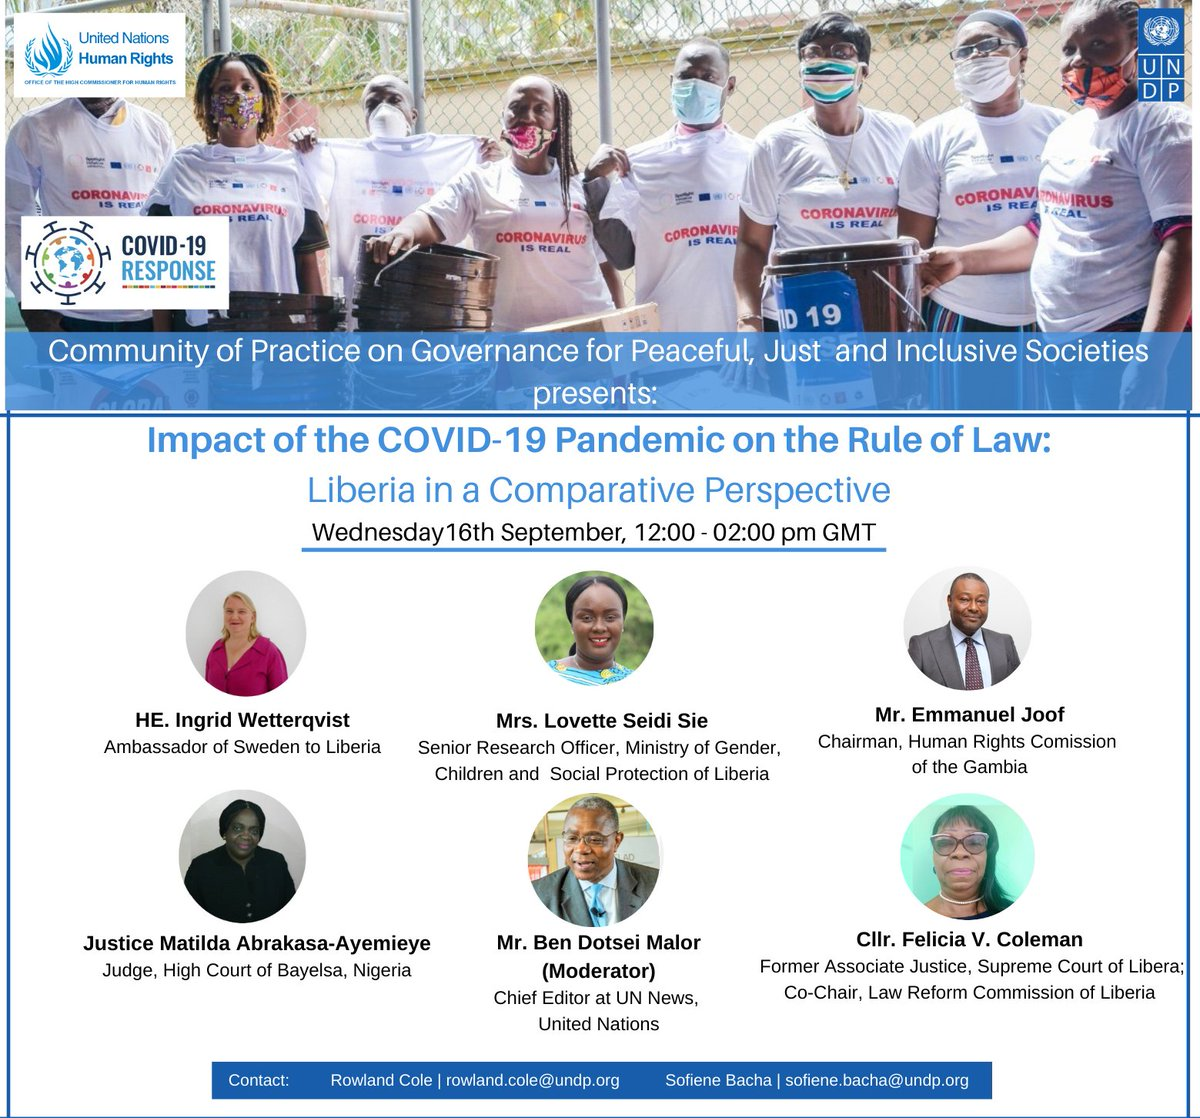 "Webinar now on ""The Impact of the COVID-19 Pandemic on #RuleOfLaw - 🇱🇷 in a Comparative Perspective"" organized by @UNDPLiberia and @OhchrL 🙏@BMalor @ingwet @LovetteSie @JoofDaniel @rowland_cole @SwedeninLiberia @UNDP @ohchr @KatyThompsonROL #ROL4Peace #HumanRights #A2J #COVID https://t.co/aGYkvUQIn3"